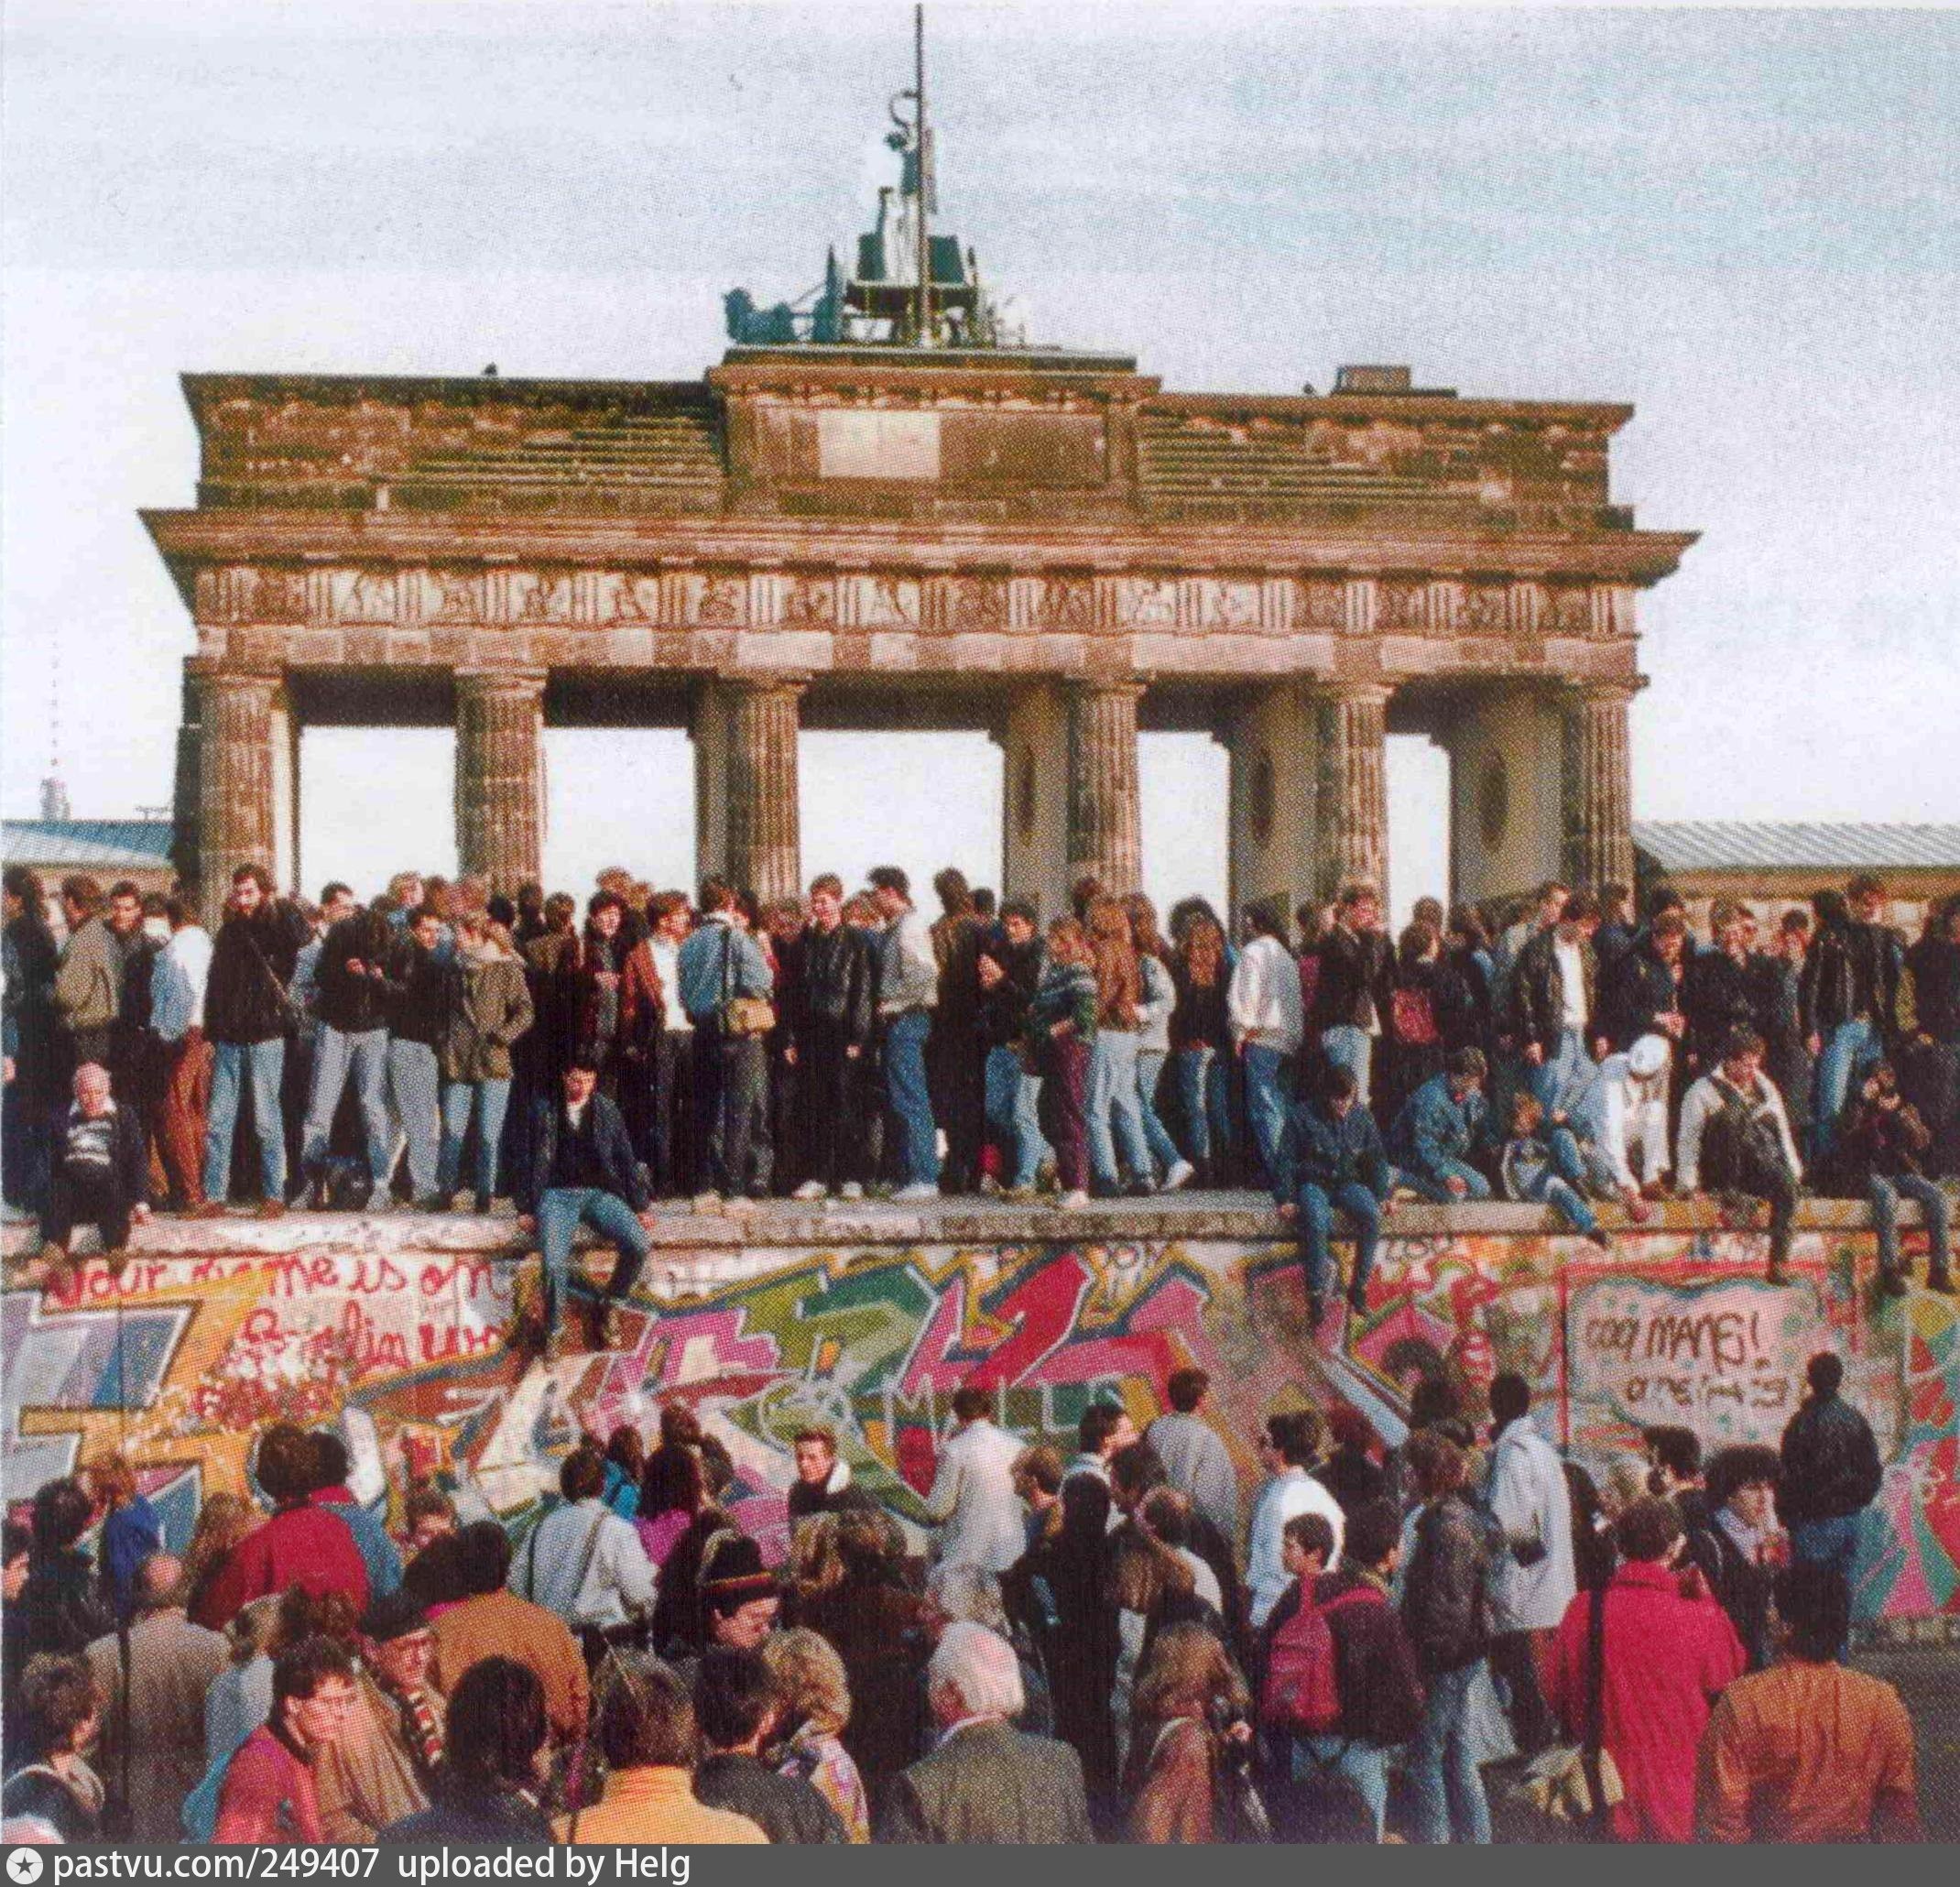 the events and factors that led to the initial rise and eventual fall of the berlin wall The cold war was a geopolitical chess match between the united states, the soviet union, and both parties' allies in which the major power players sought to project their respective ideologies across the globe in the wake of colonialism's collapse following world war two.